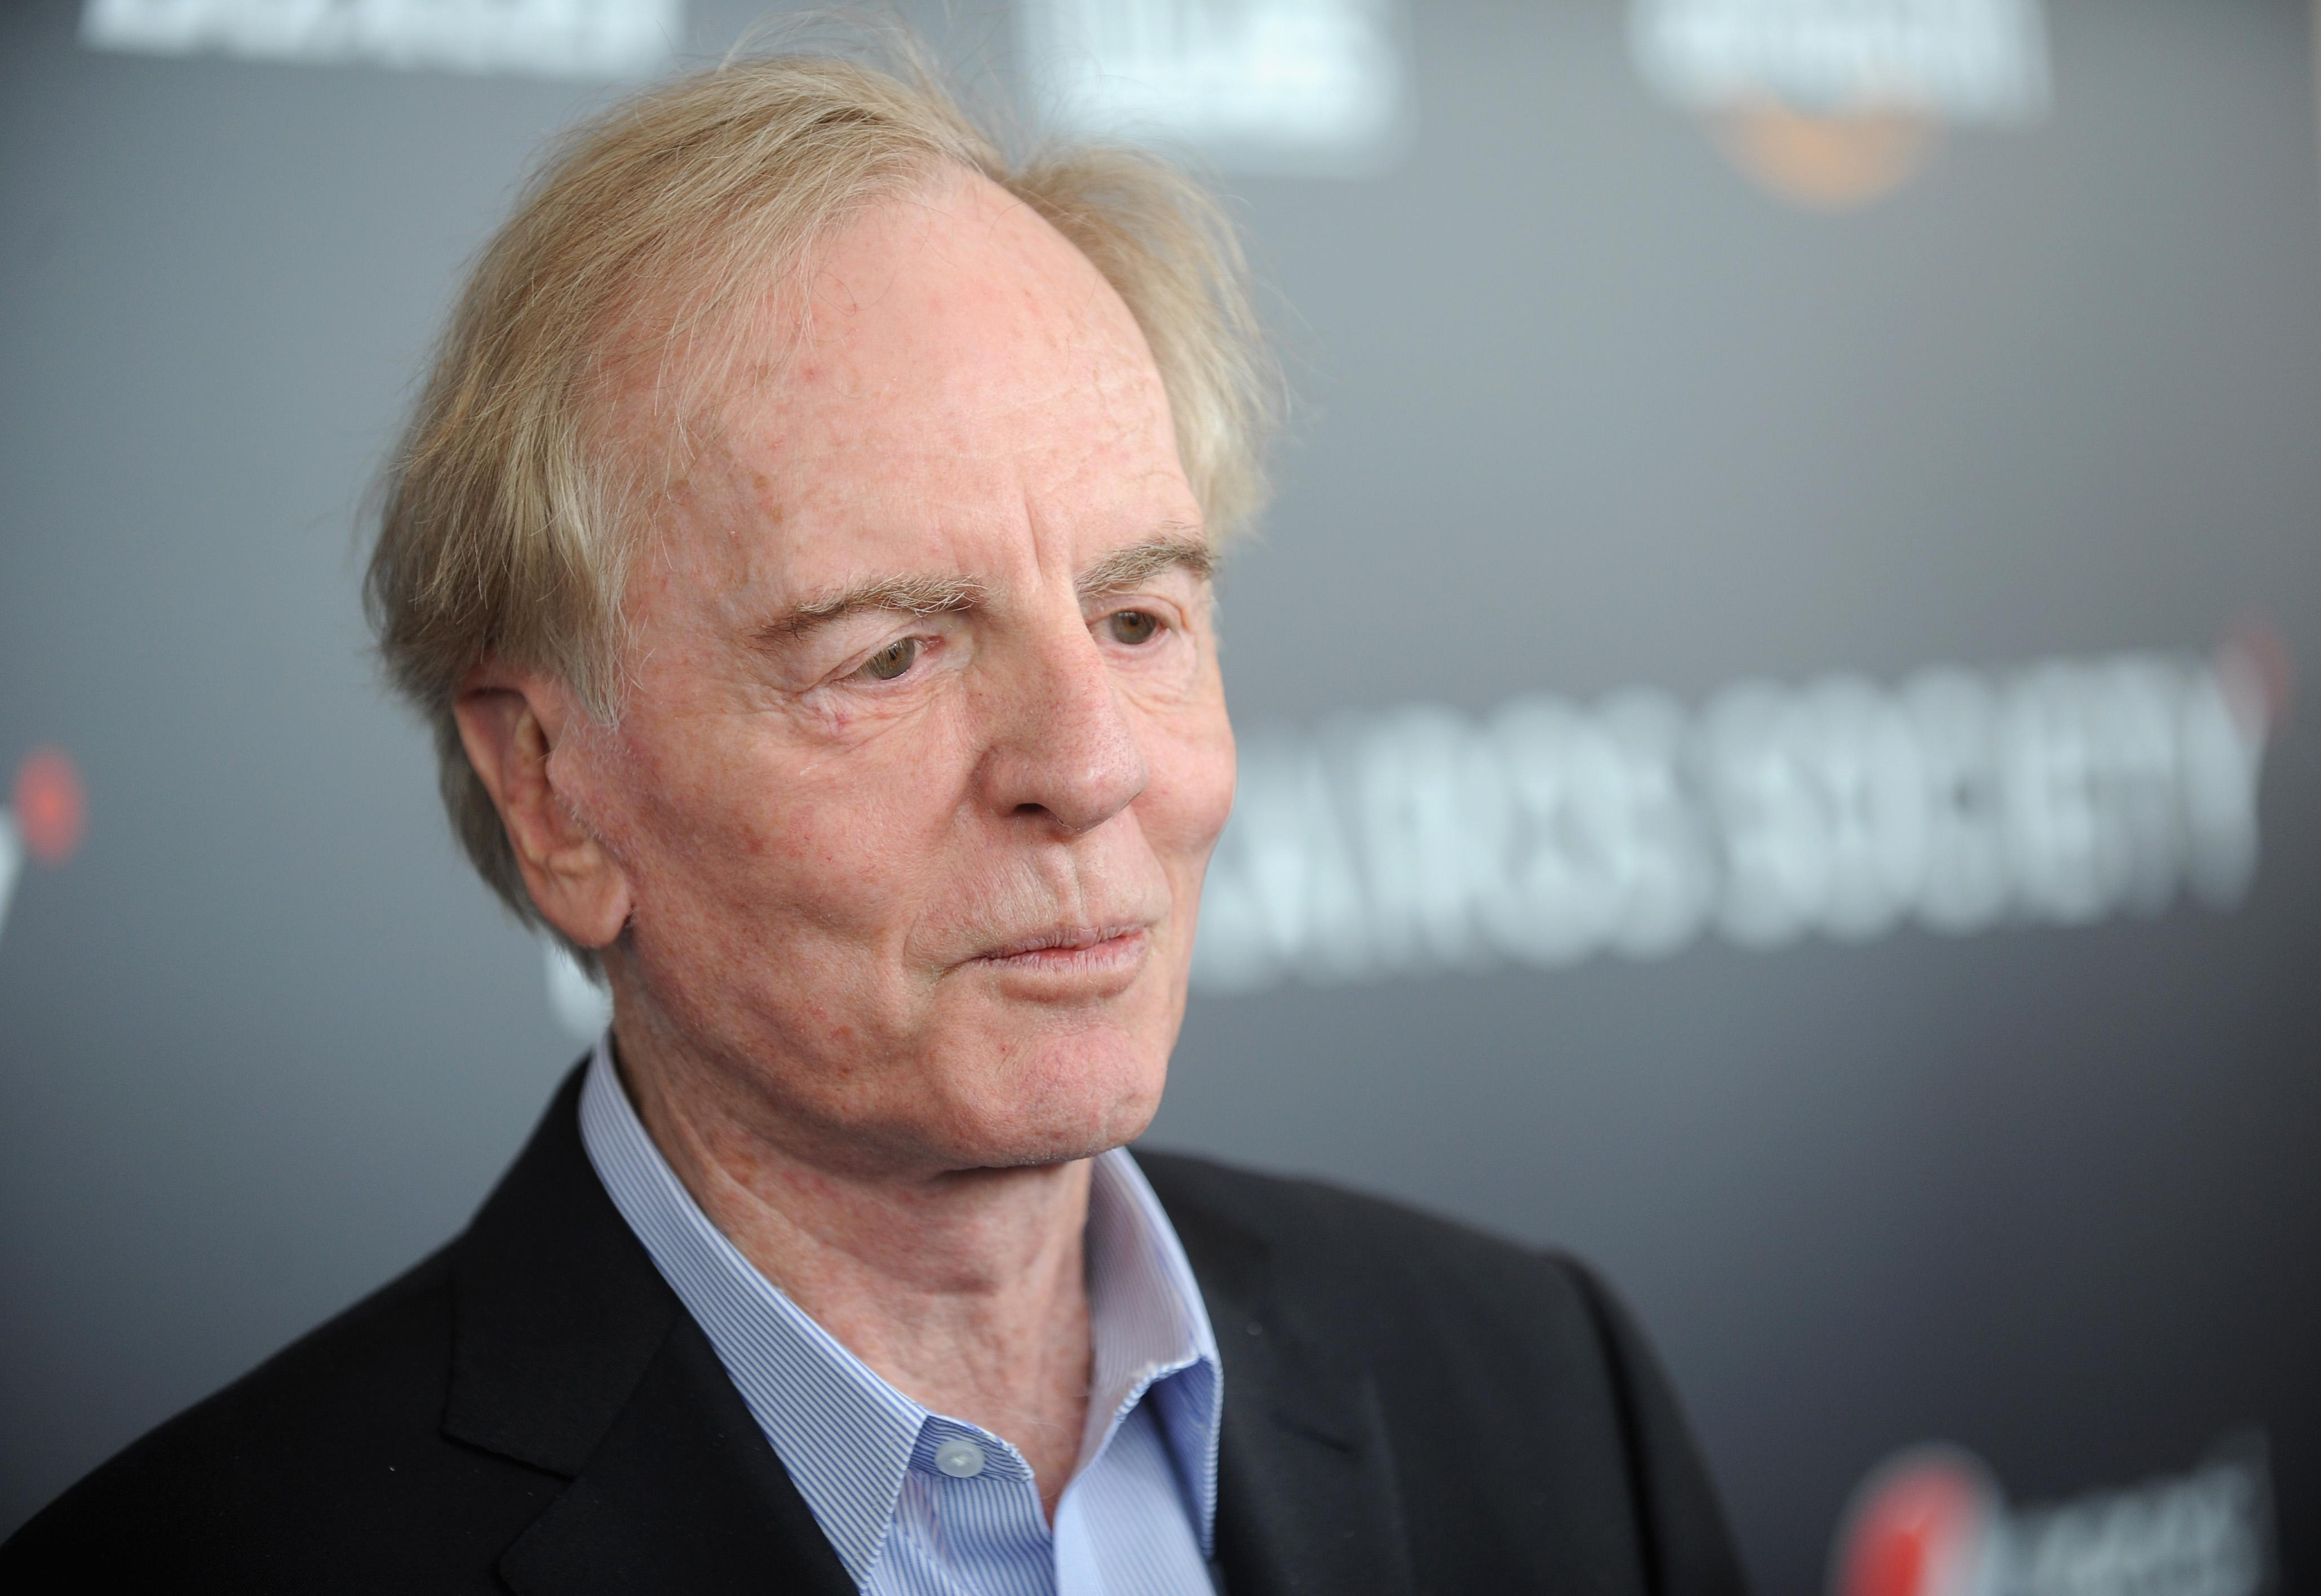 'Medicare for all' is 'crazy': former Apple CEO John Sculley